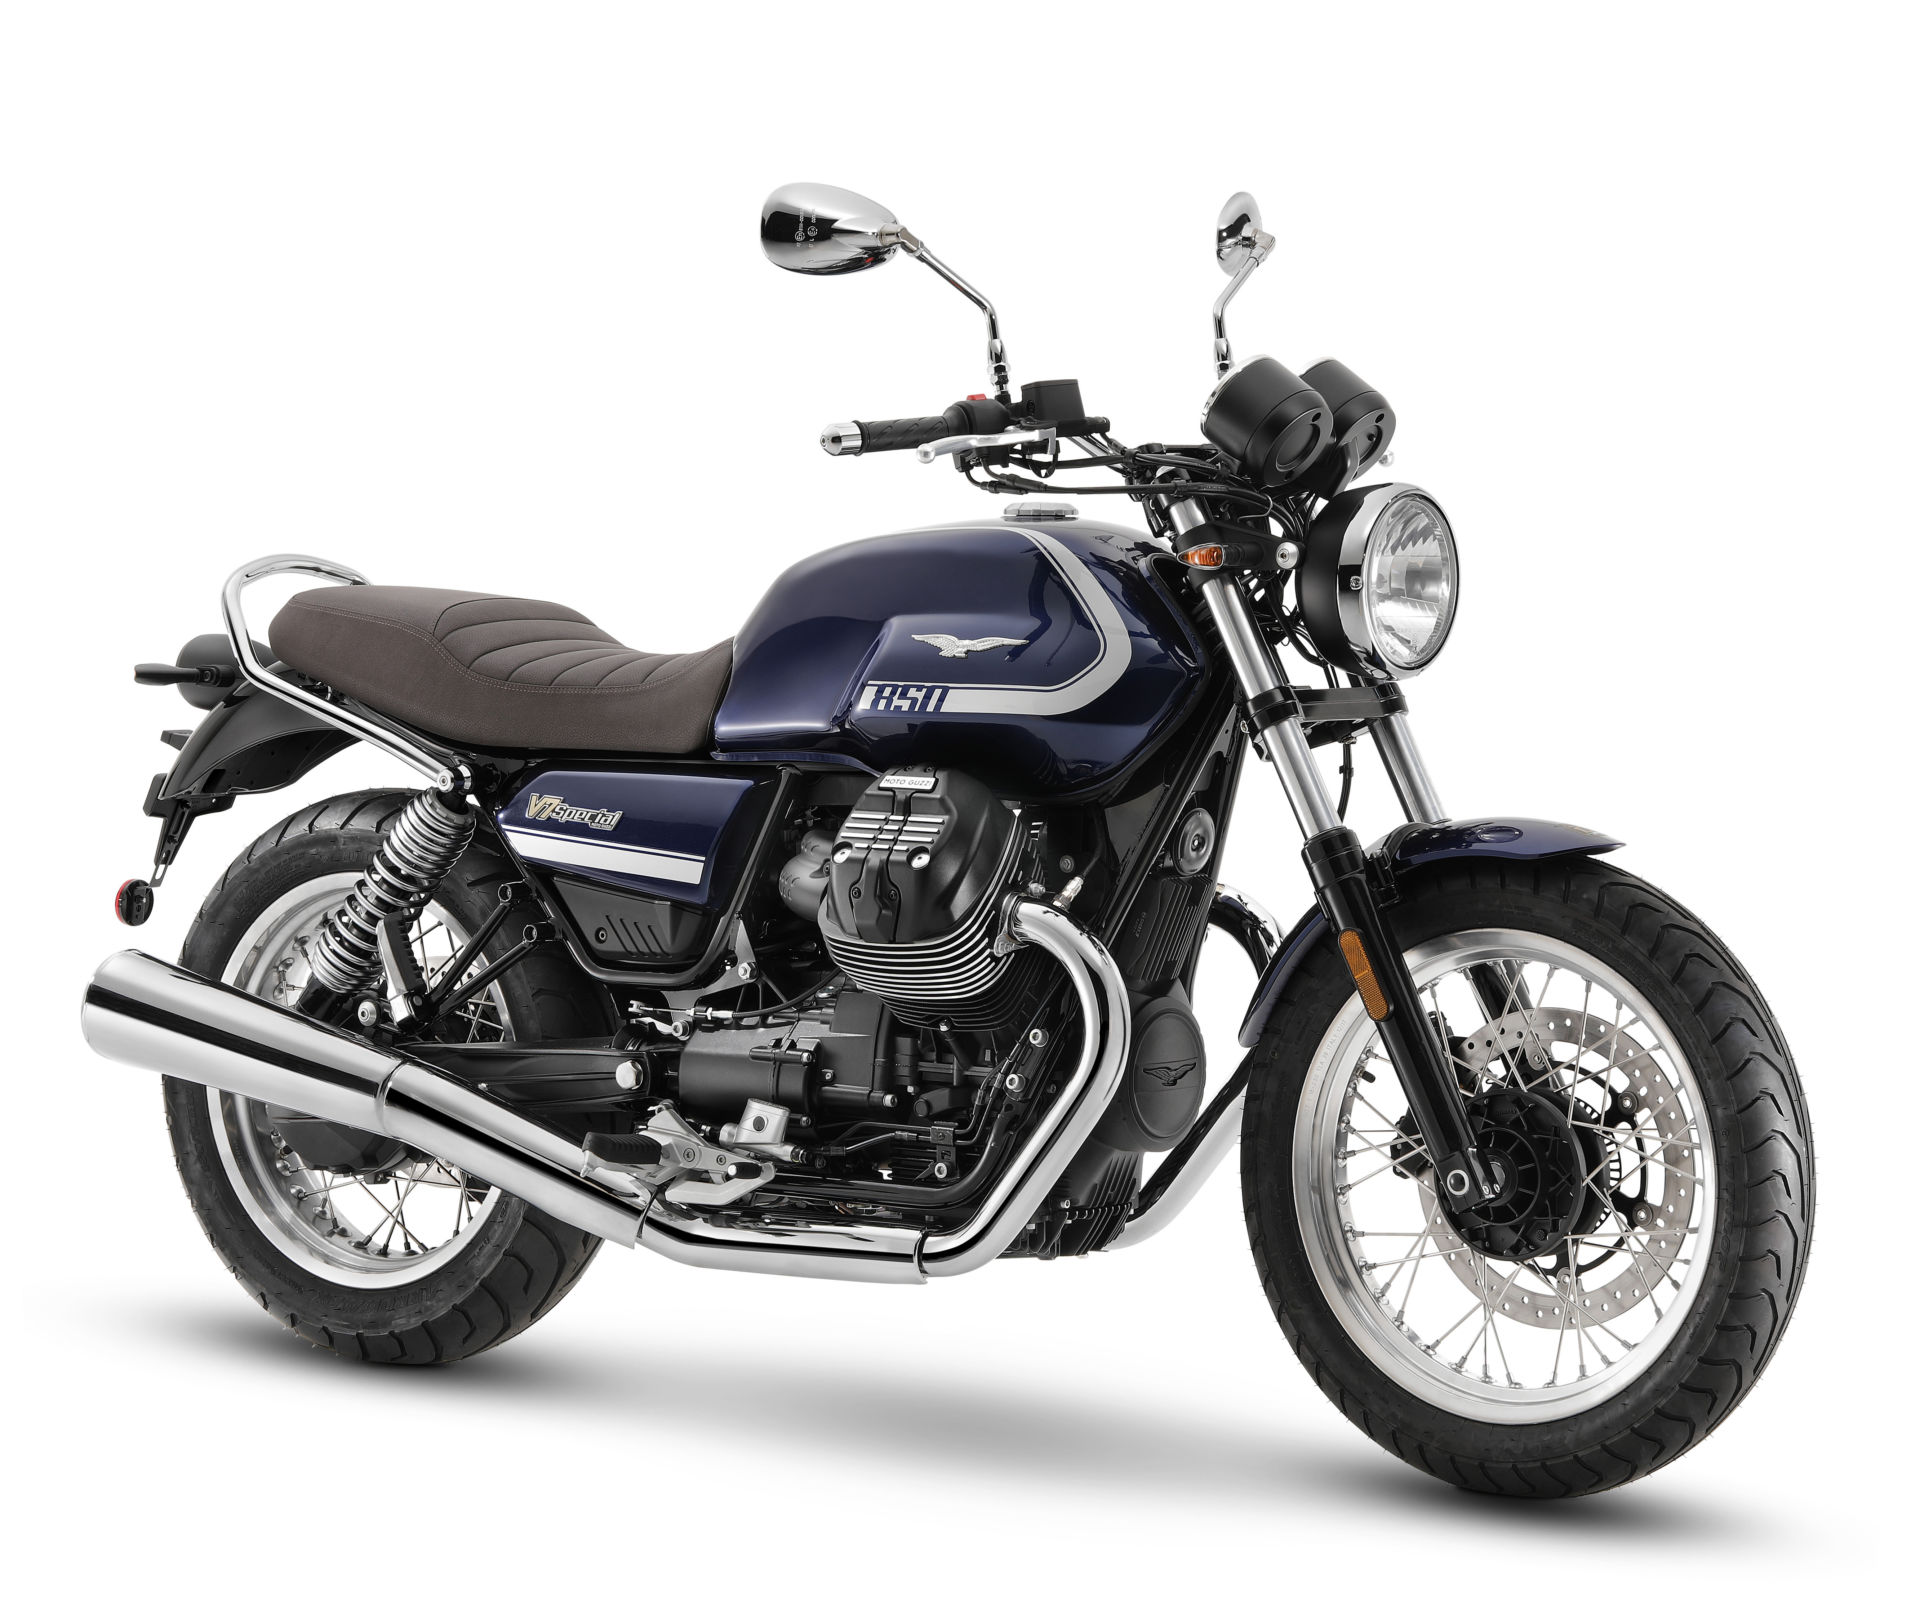 More On The New Moto Guzzi V7 Models